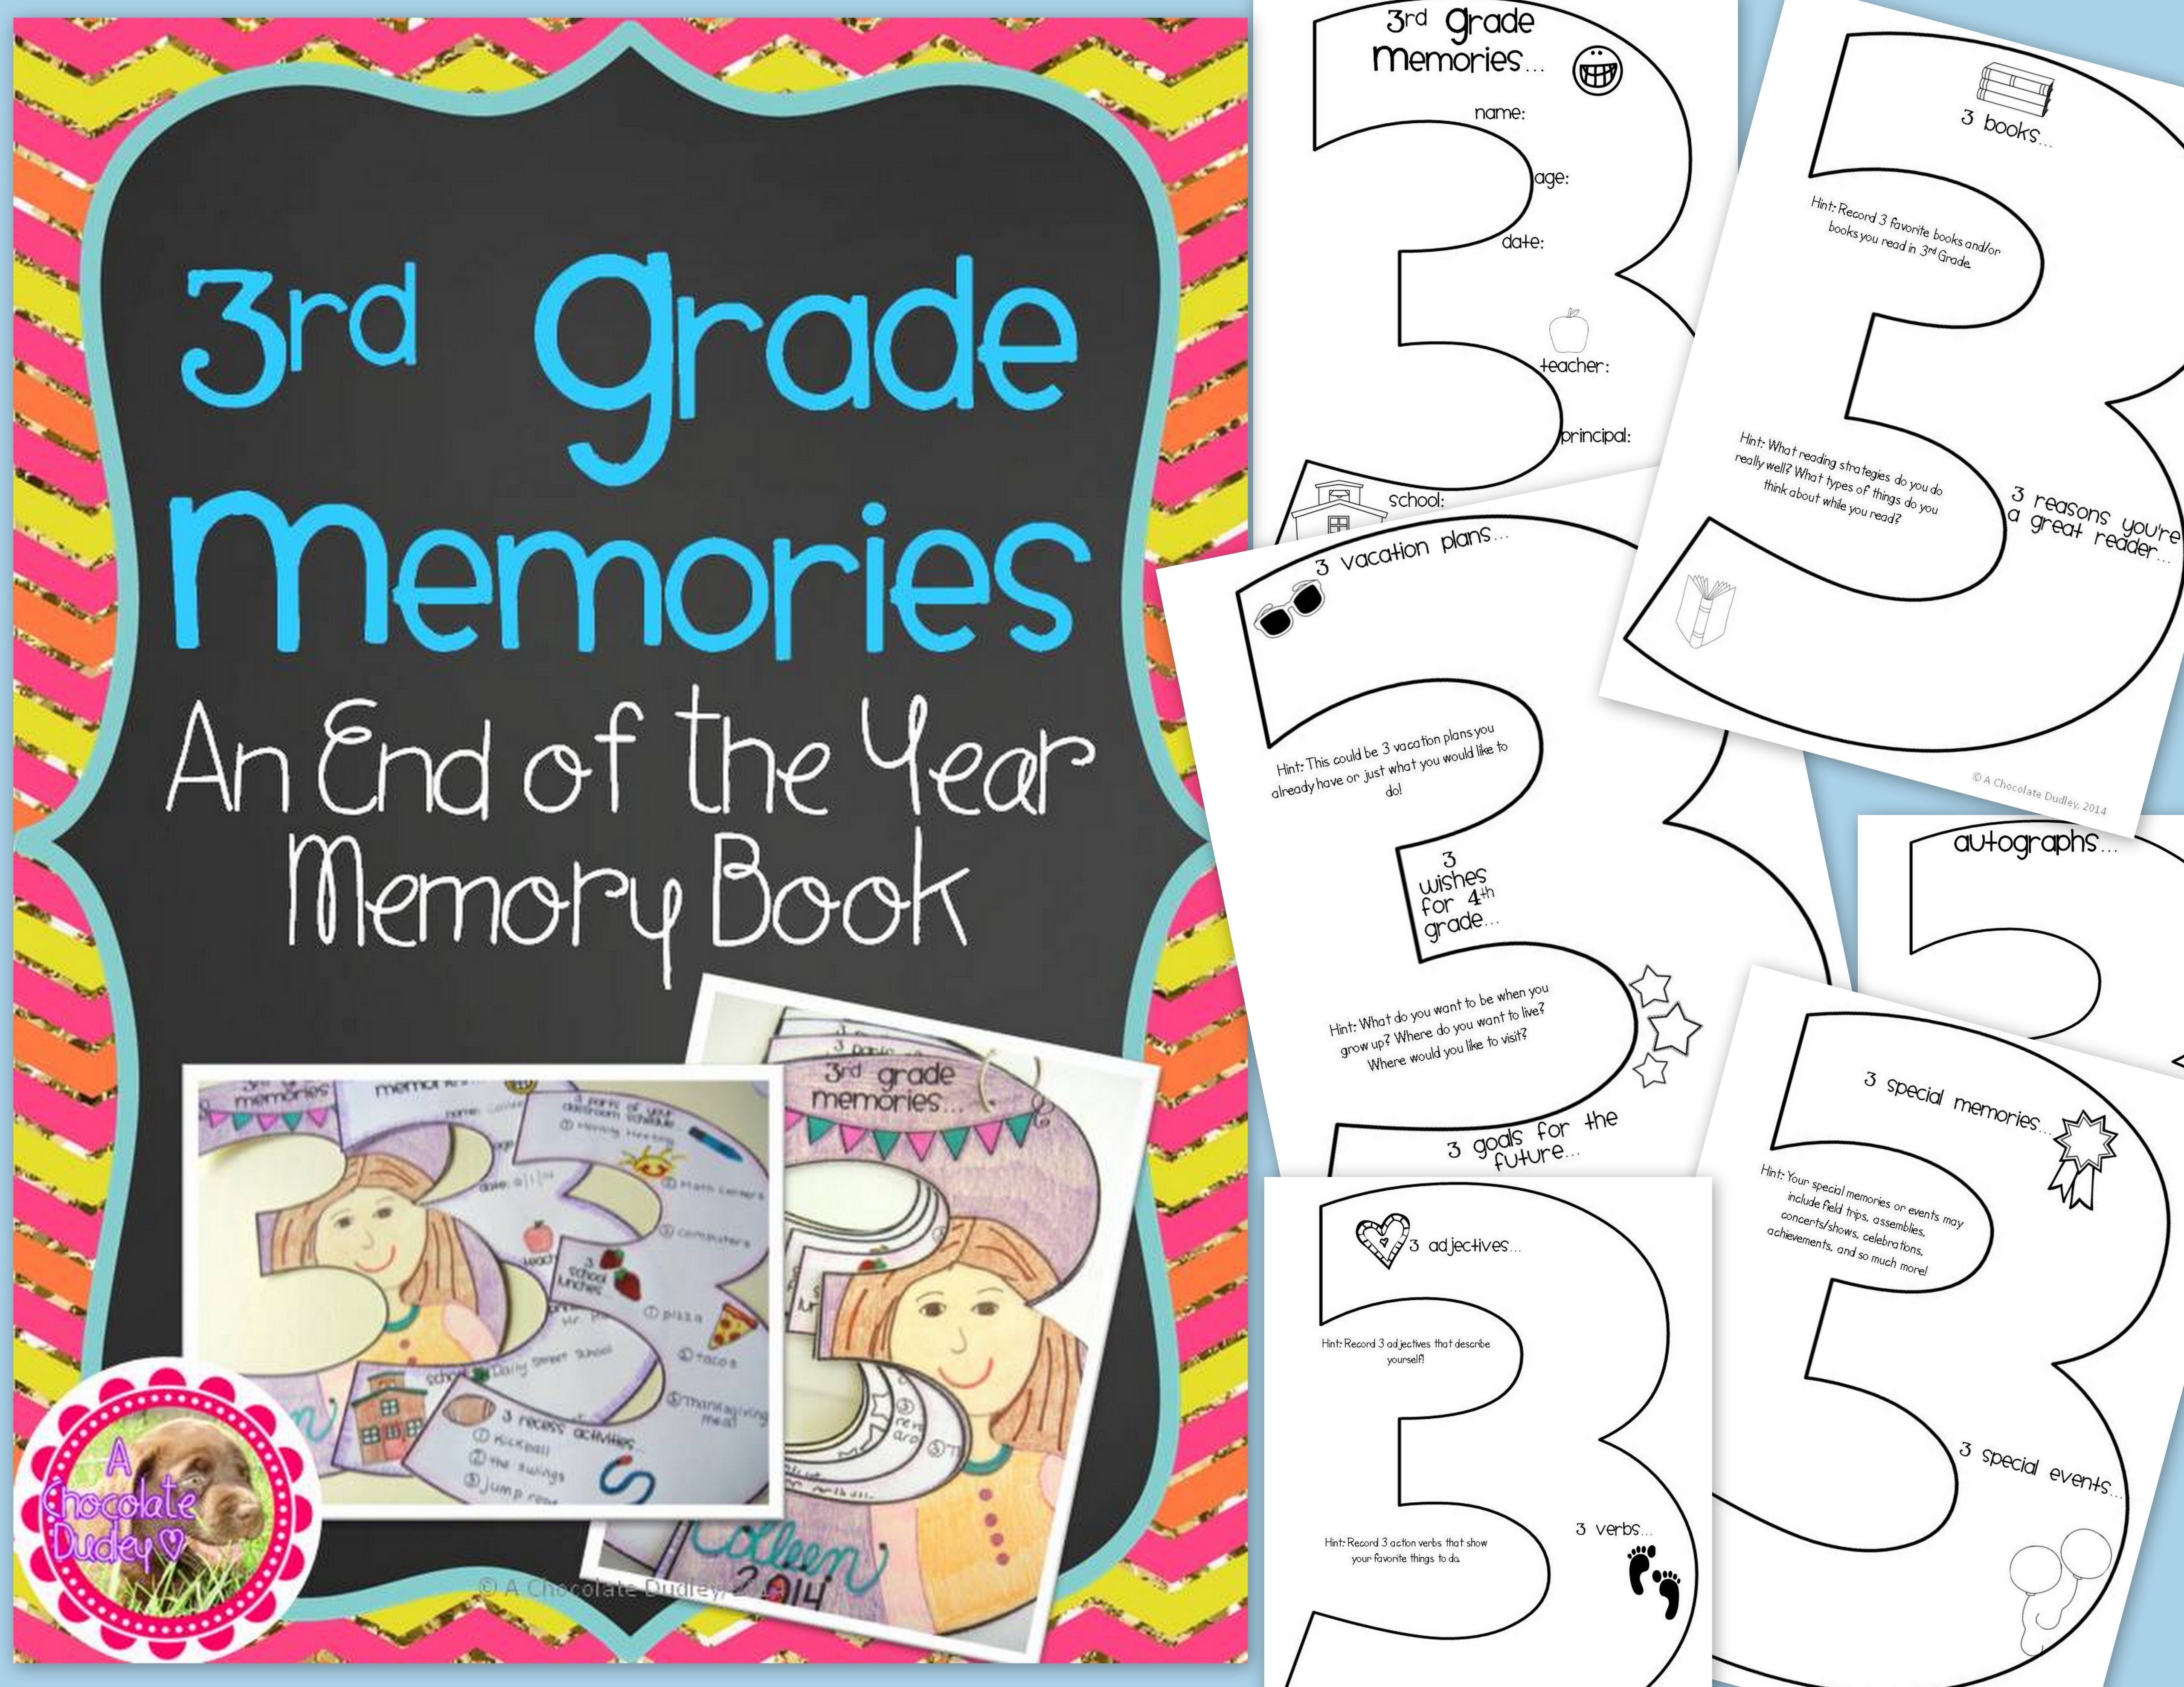 3rd Grade Memories An End Of The Year Memory Book